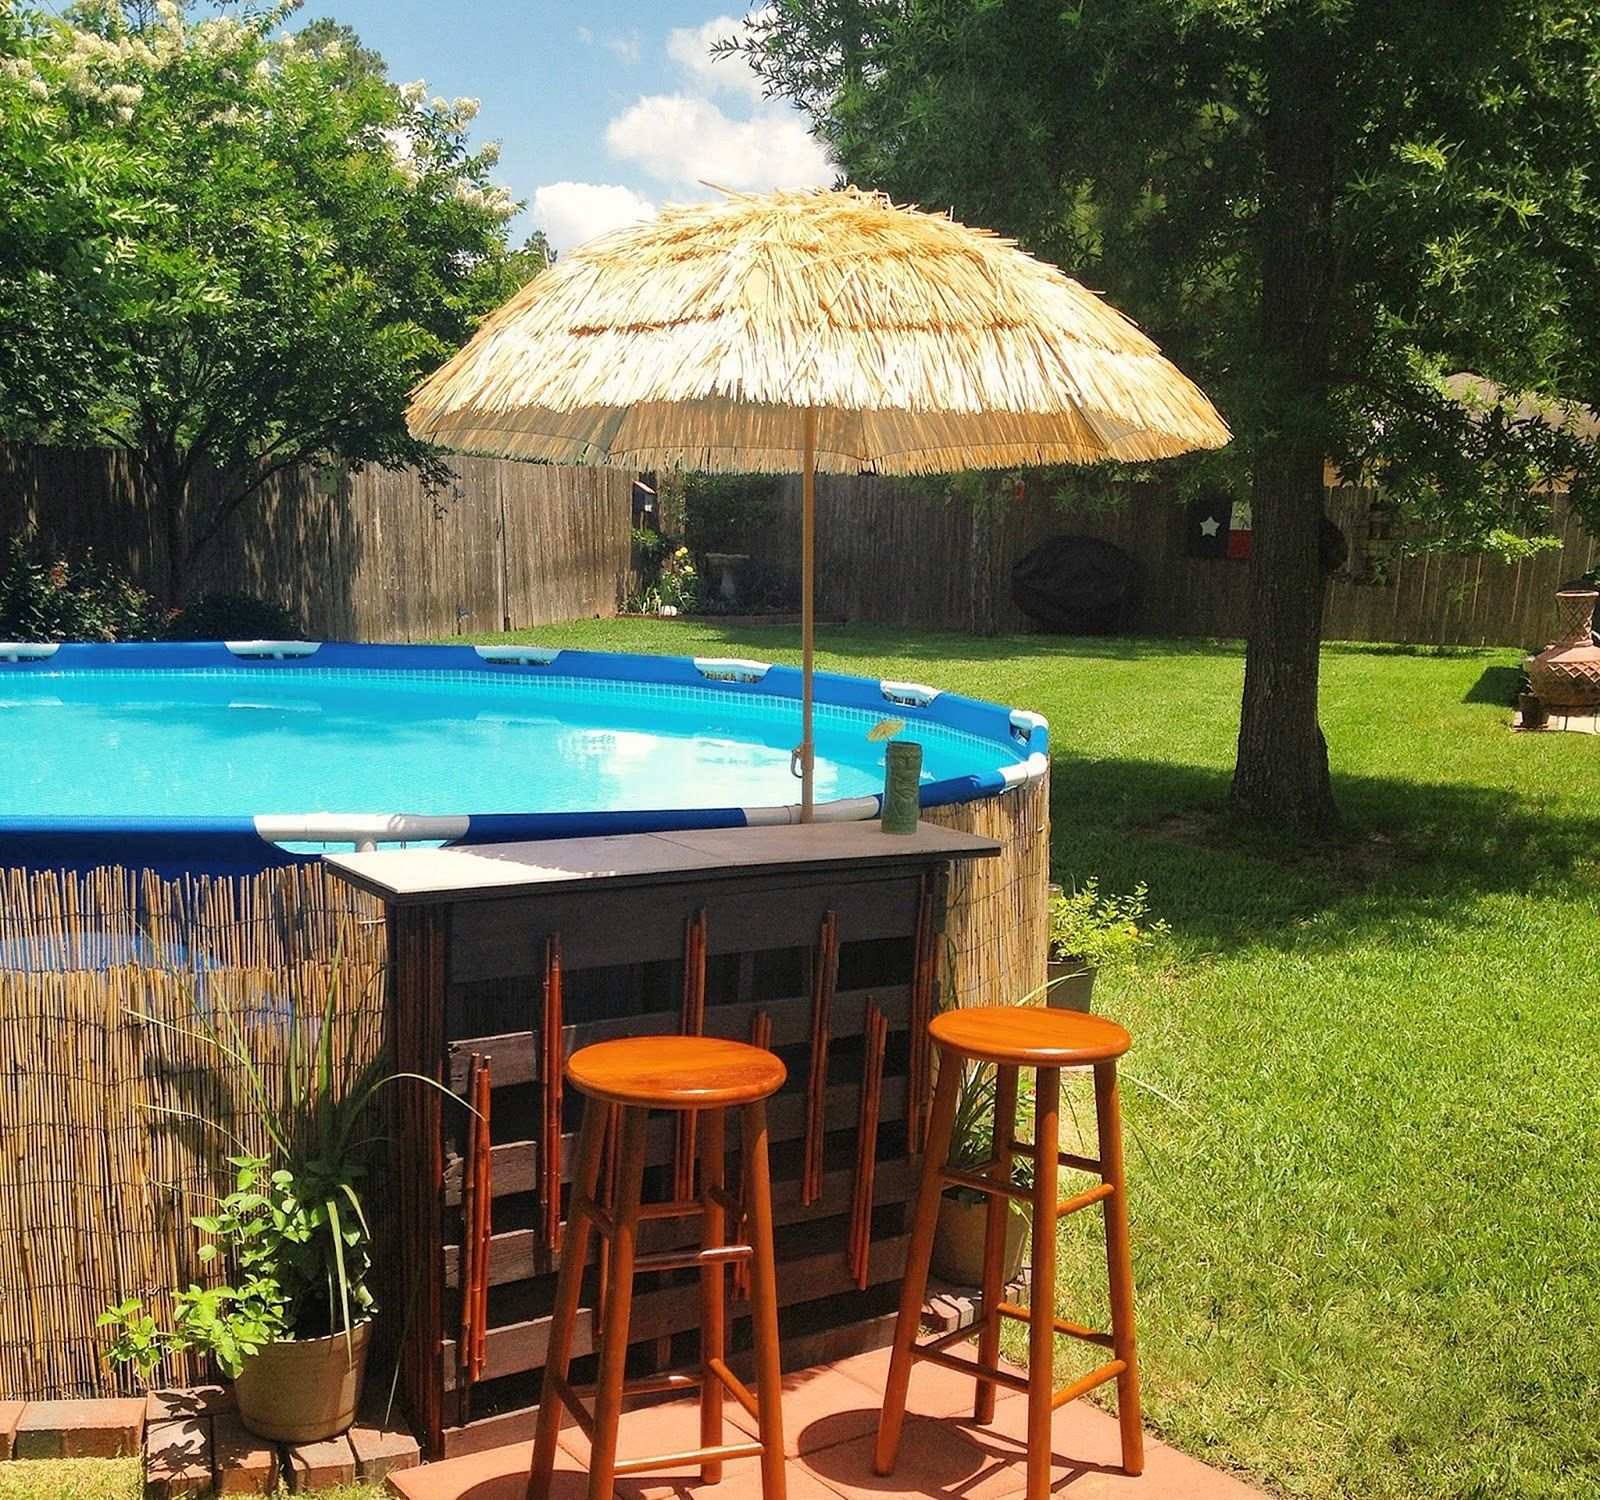 12 Clever Ways Diy Above Ground Pool Ideas On A Budget Swimming